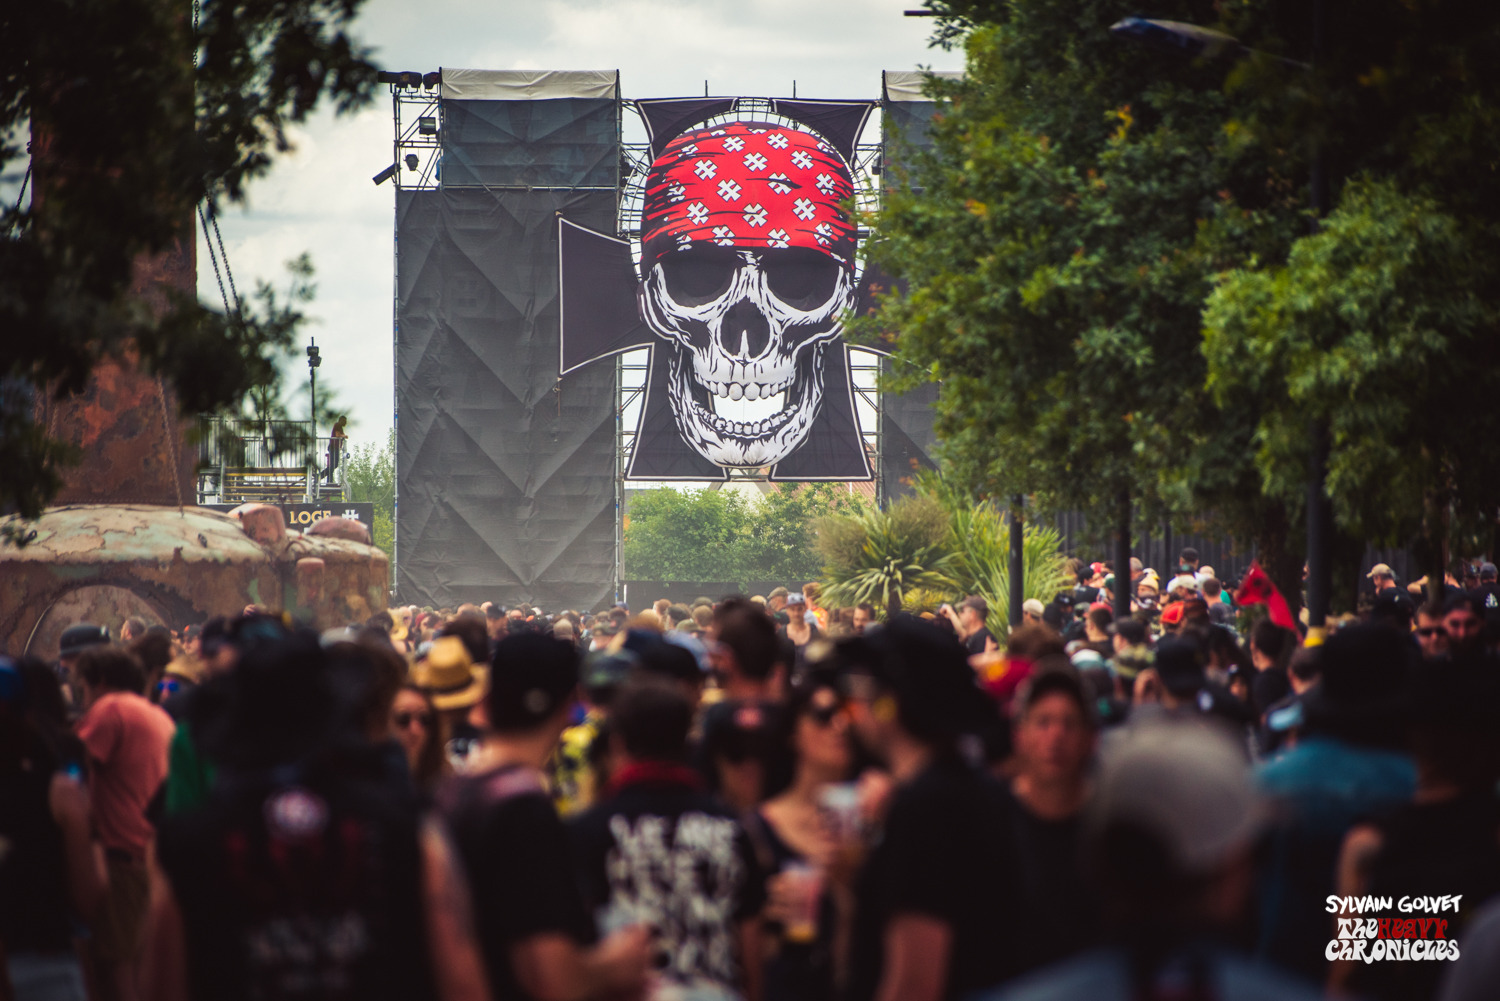 HELLFEST_2019_VENDREDI_00_AMBIANCE-13